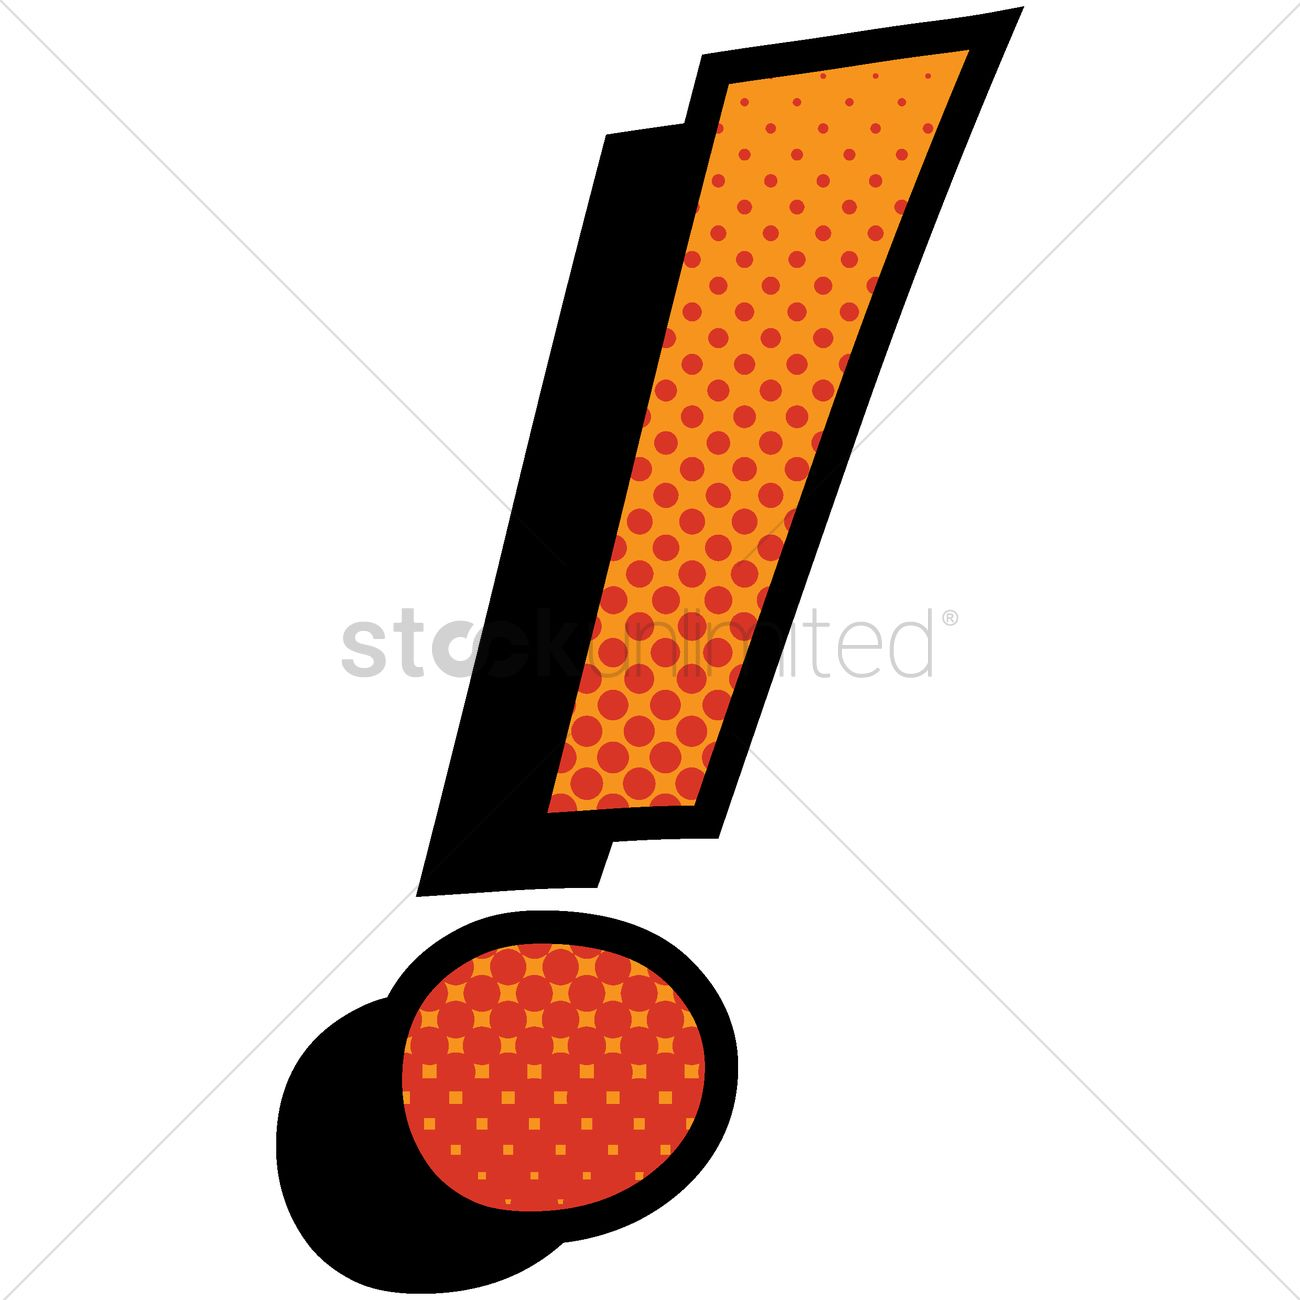 1300x1300 Exclamation Point Vector Image